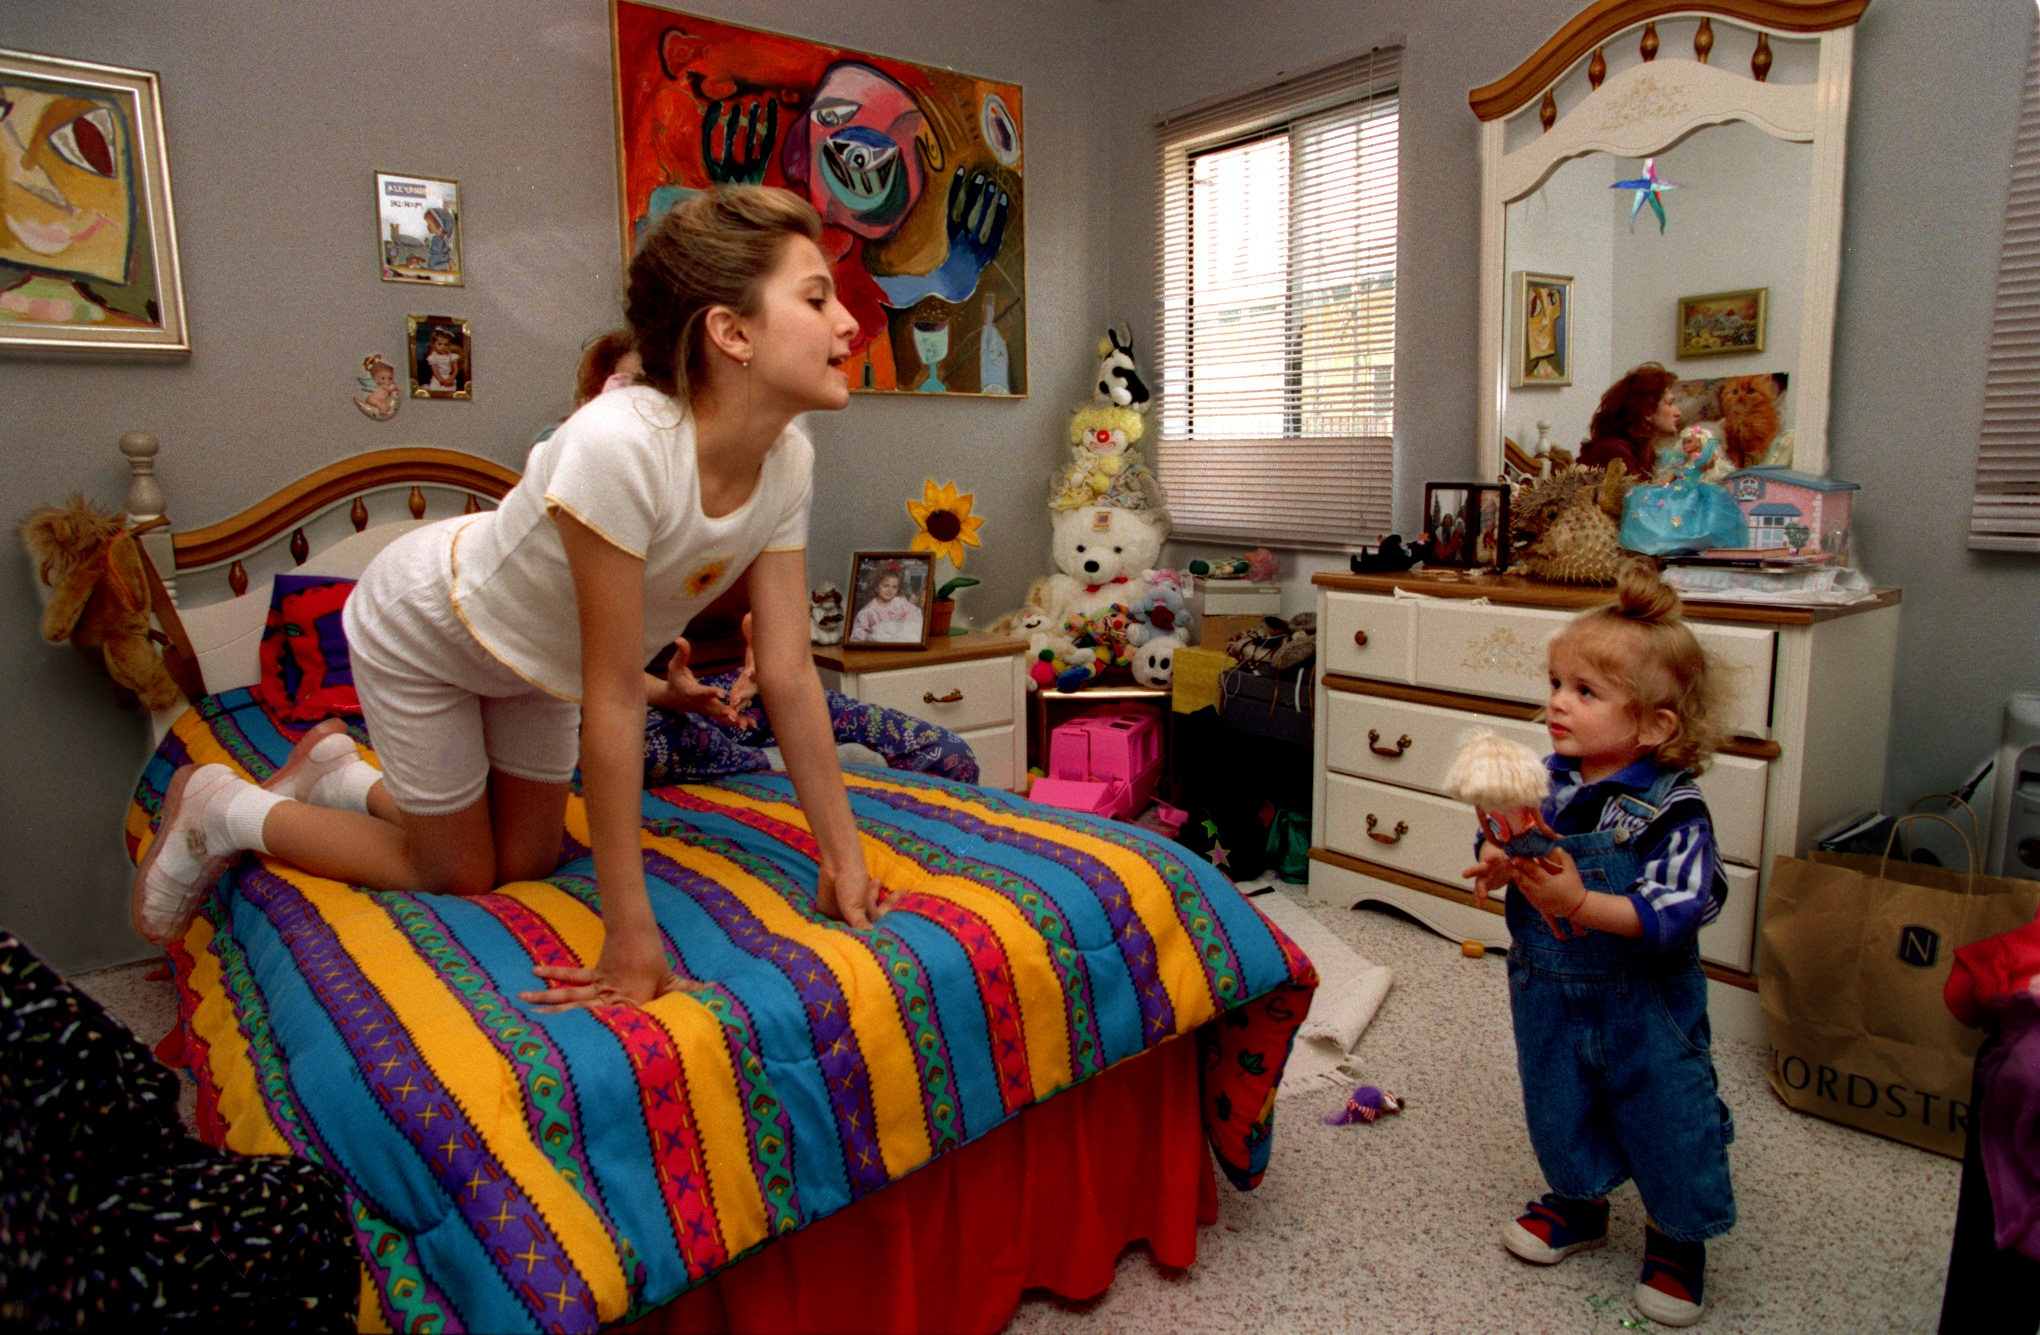 Alexandra Nechita sprawled out on her Pocahontas bedspread in her Norwalk home, playing with Maximillian. She says that aside from painting, she likes nothing better than playing with her baby brother, her best friend. ©Gail Fisher Los Angeles Times